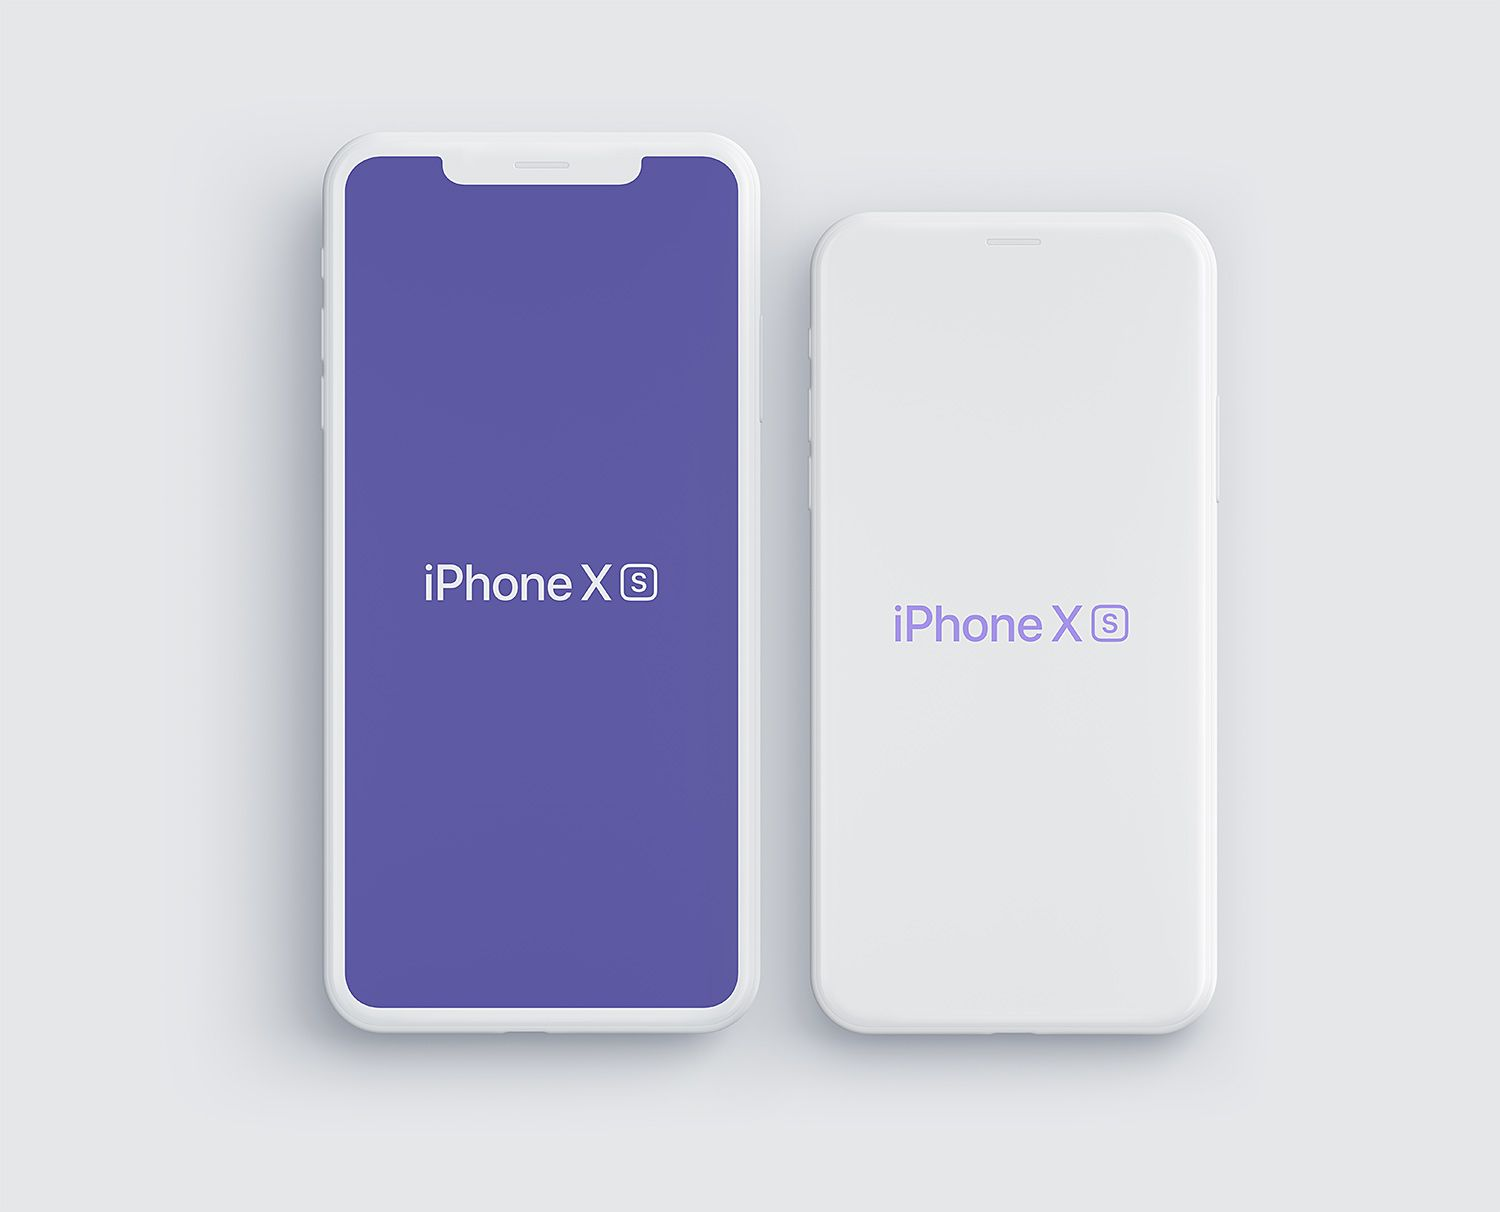 Download Iphone Xs Iphone Xs Max Mockups Free Psd Sketch Ipad Mockup Free Iphone Mockup Free Mockup Free Psd